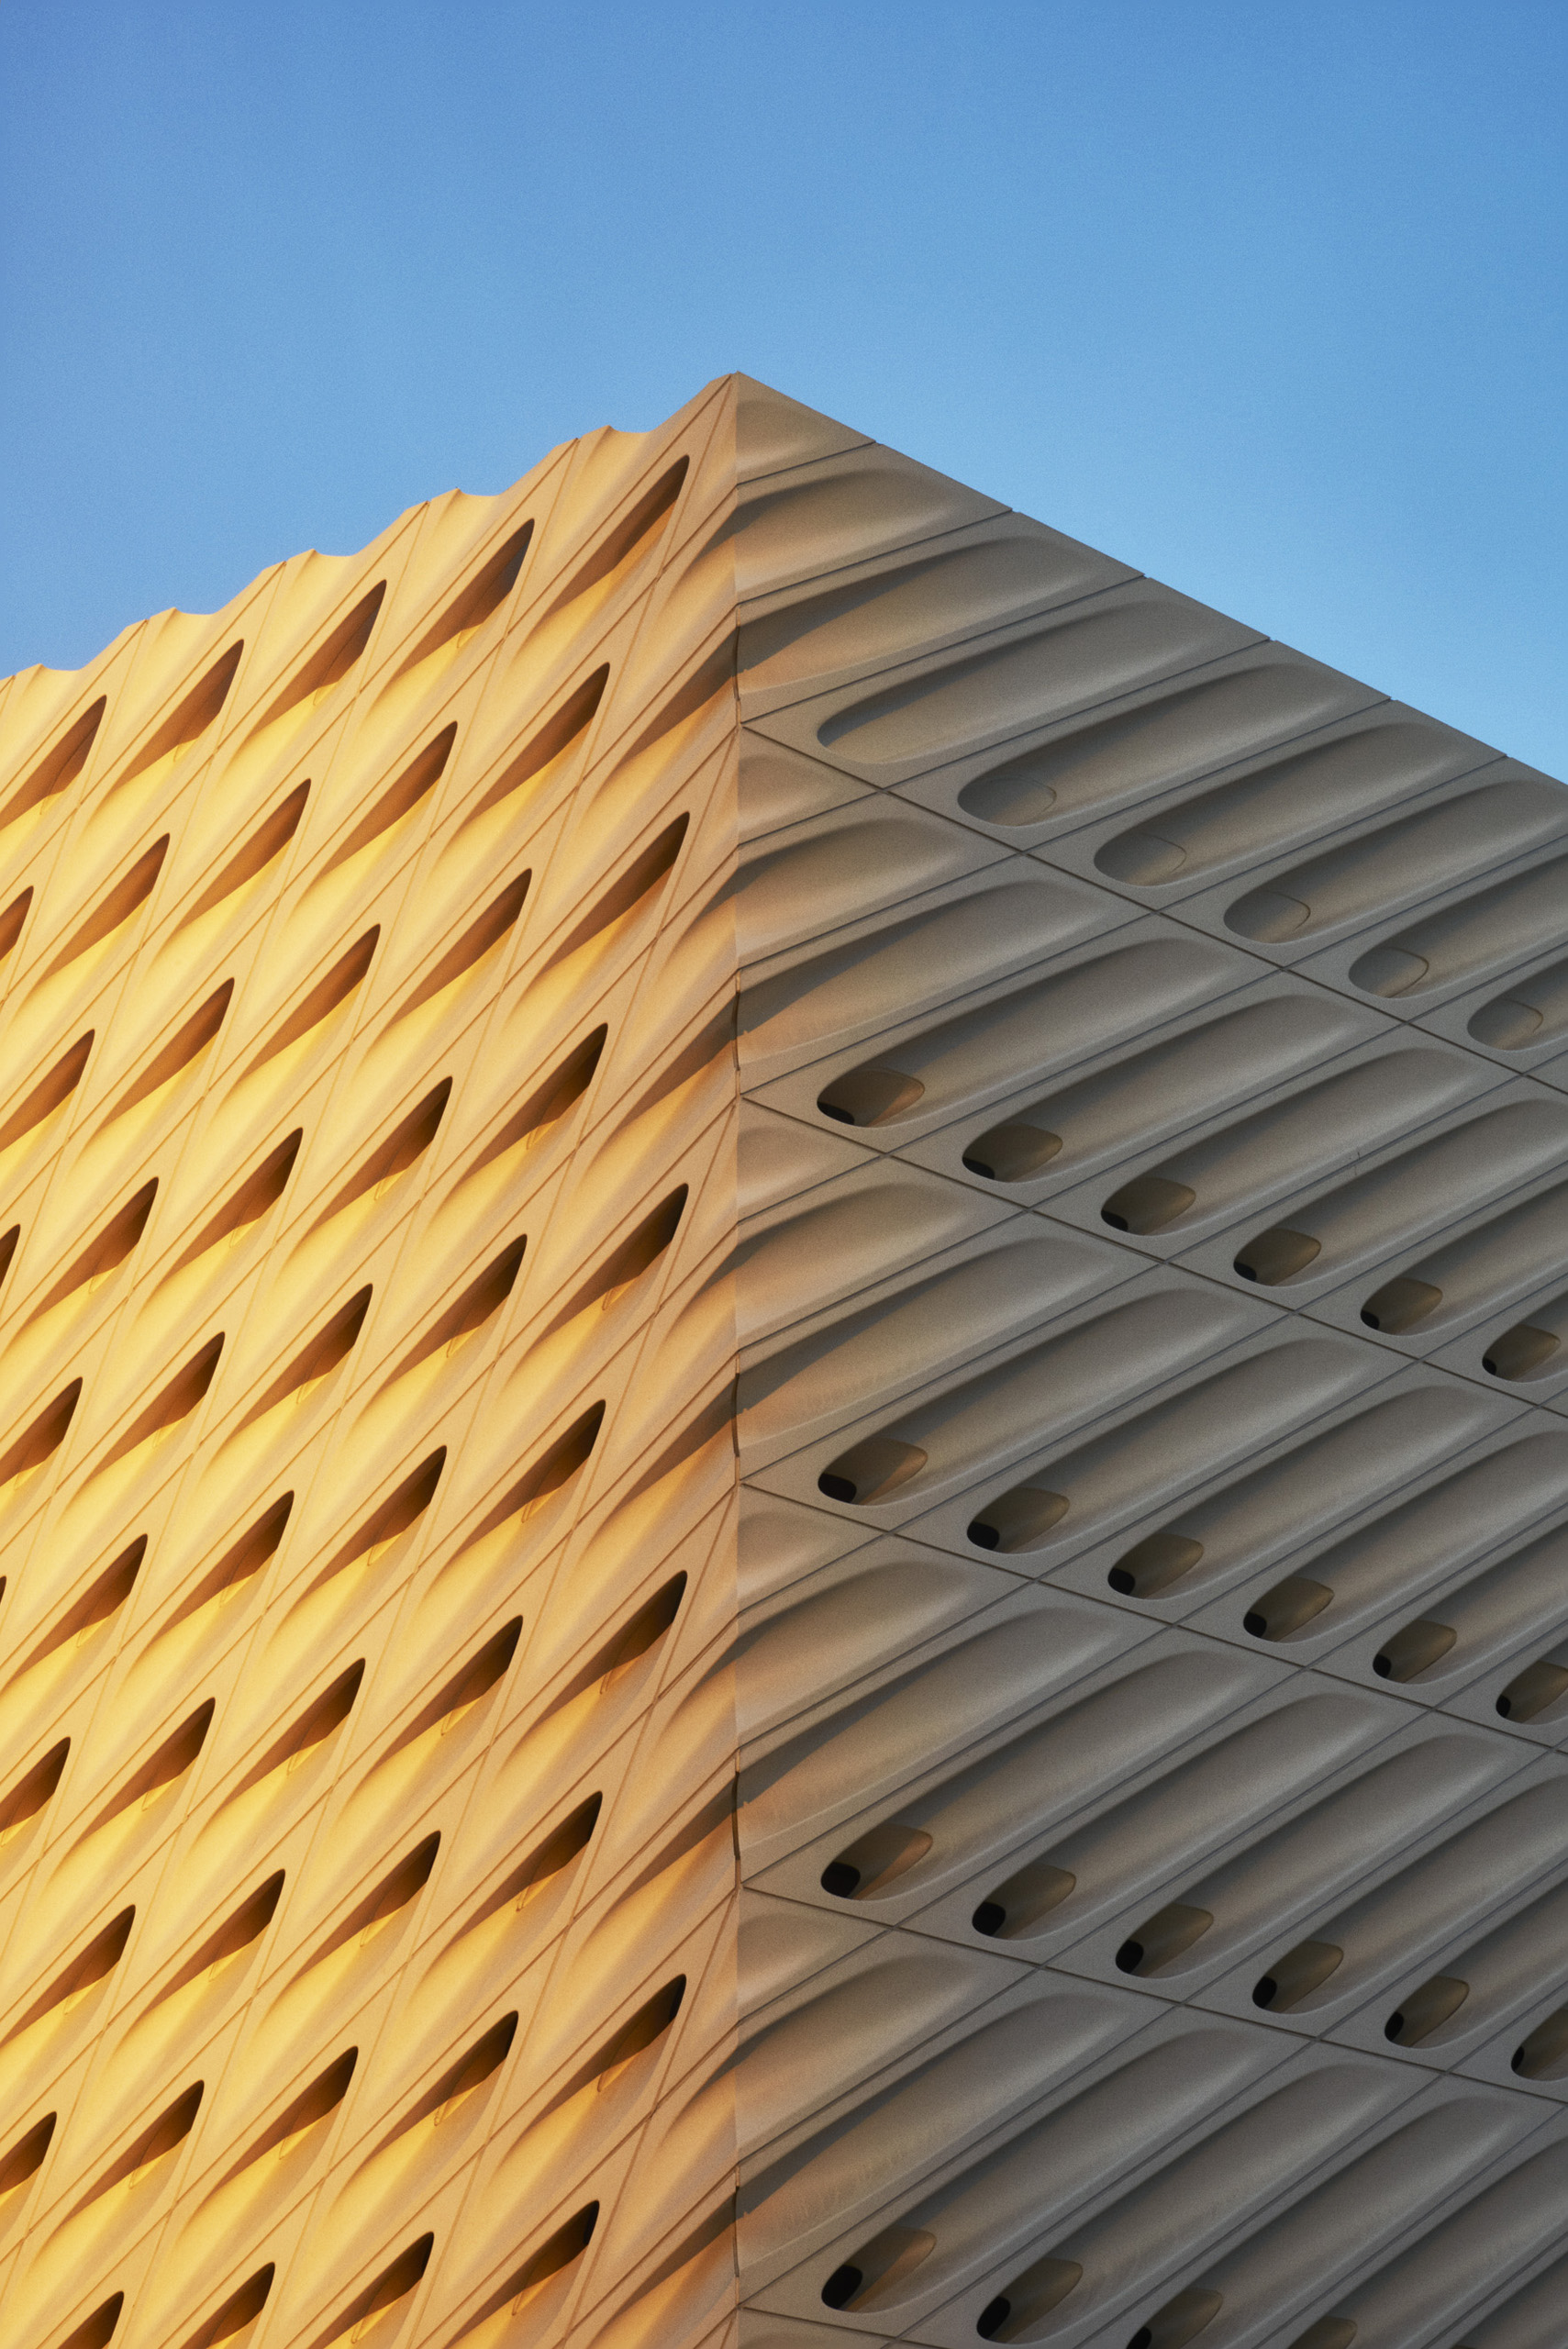 The exterior of the Broad Museum in Los Angeles, designed by Diller Scofidio + Renfro, on Sept. 18th, 2015.